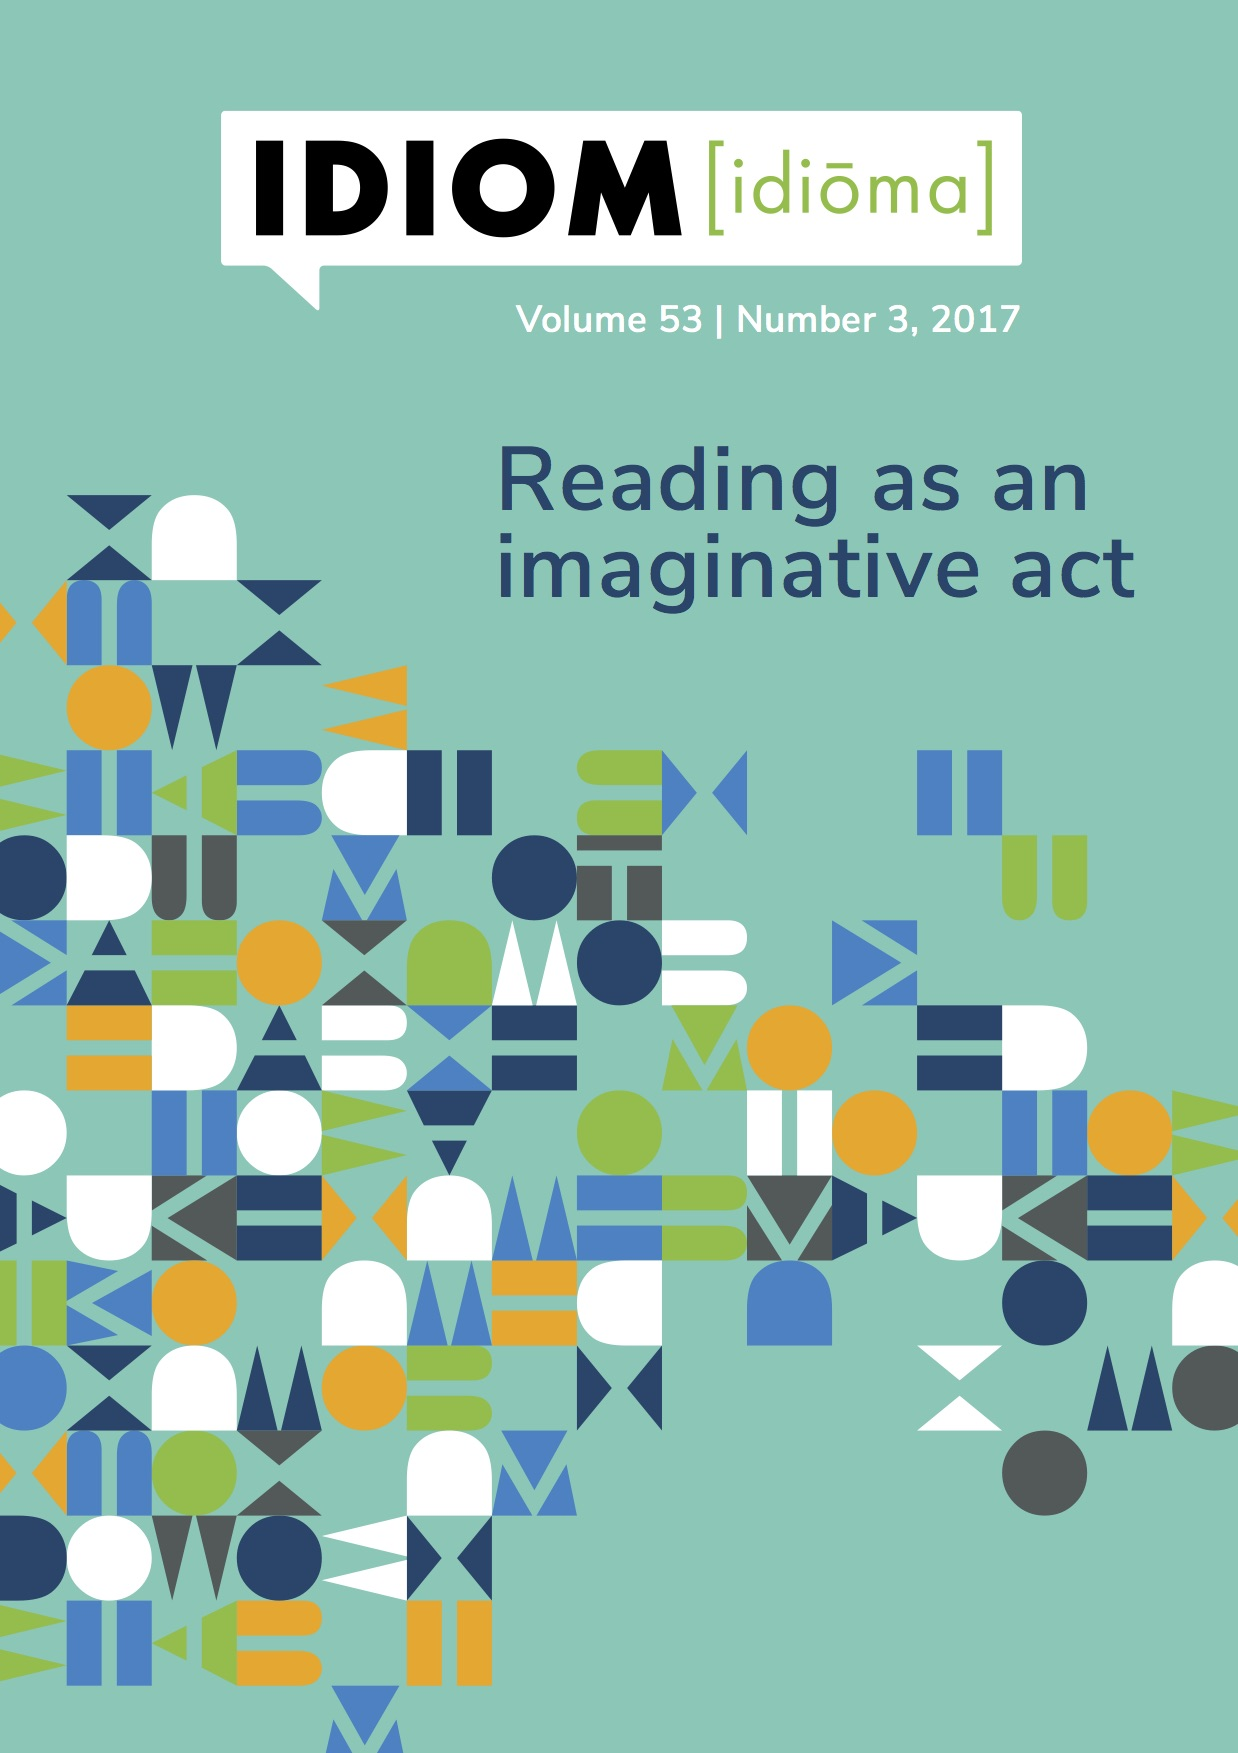 Idiom Volume 53 No 3, 2017 - Reading as an imaginative act